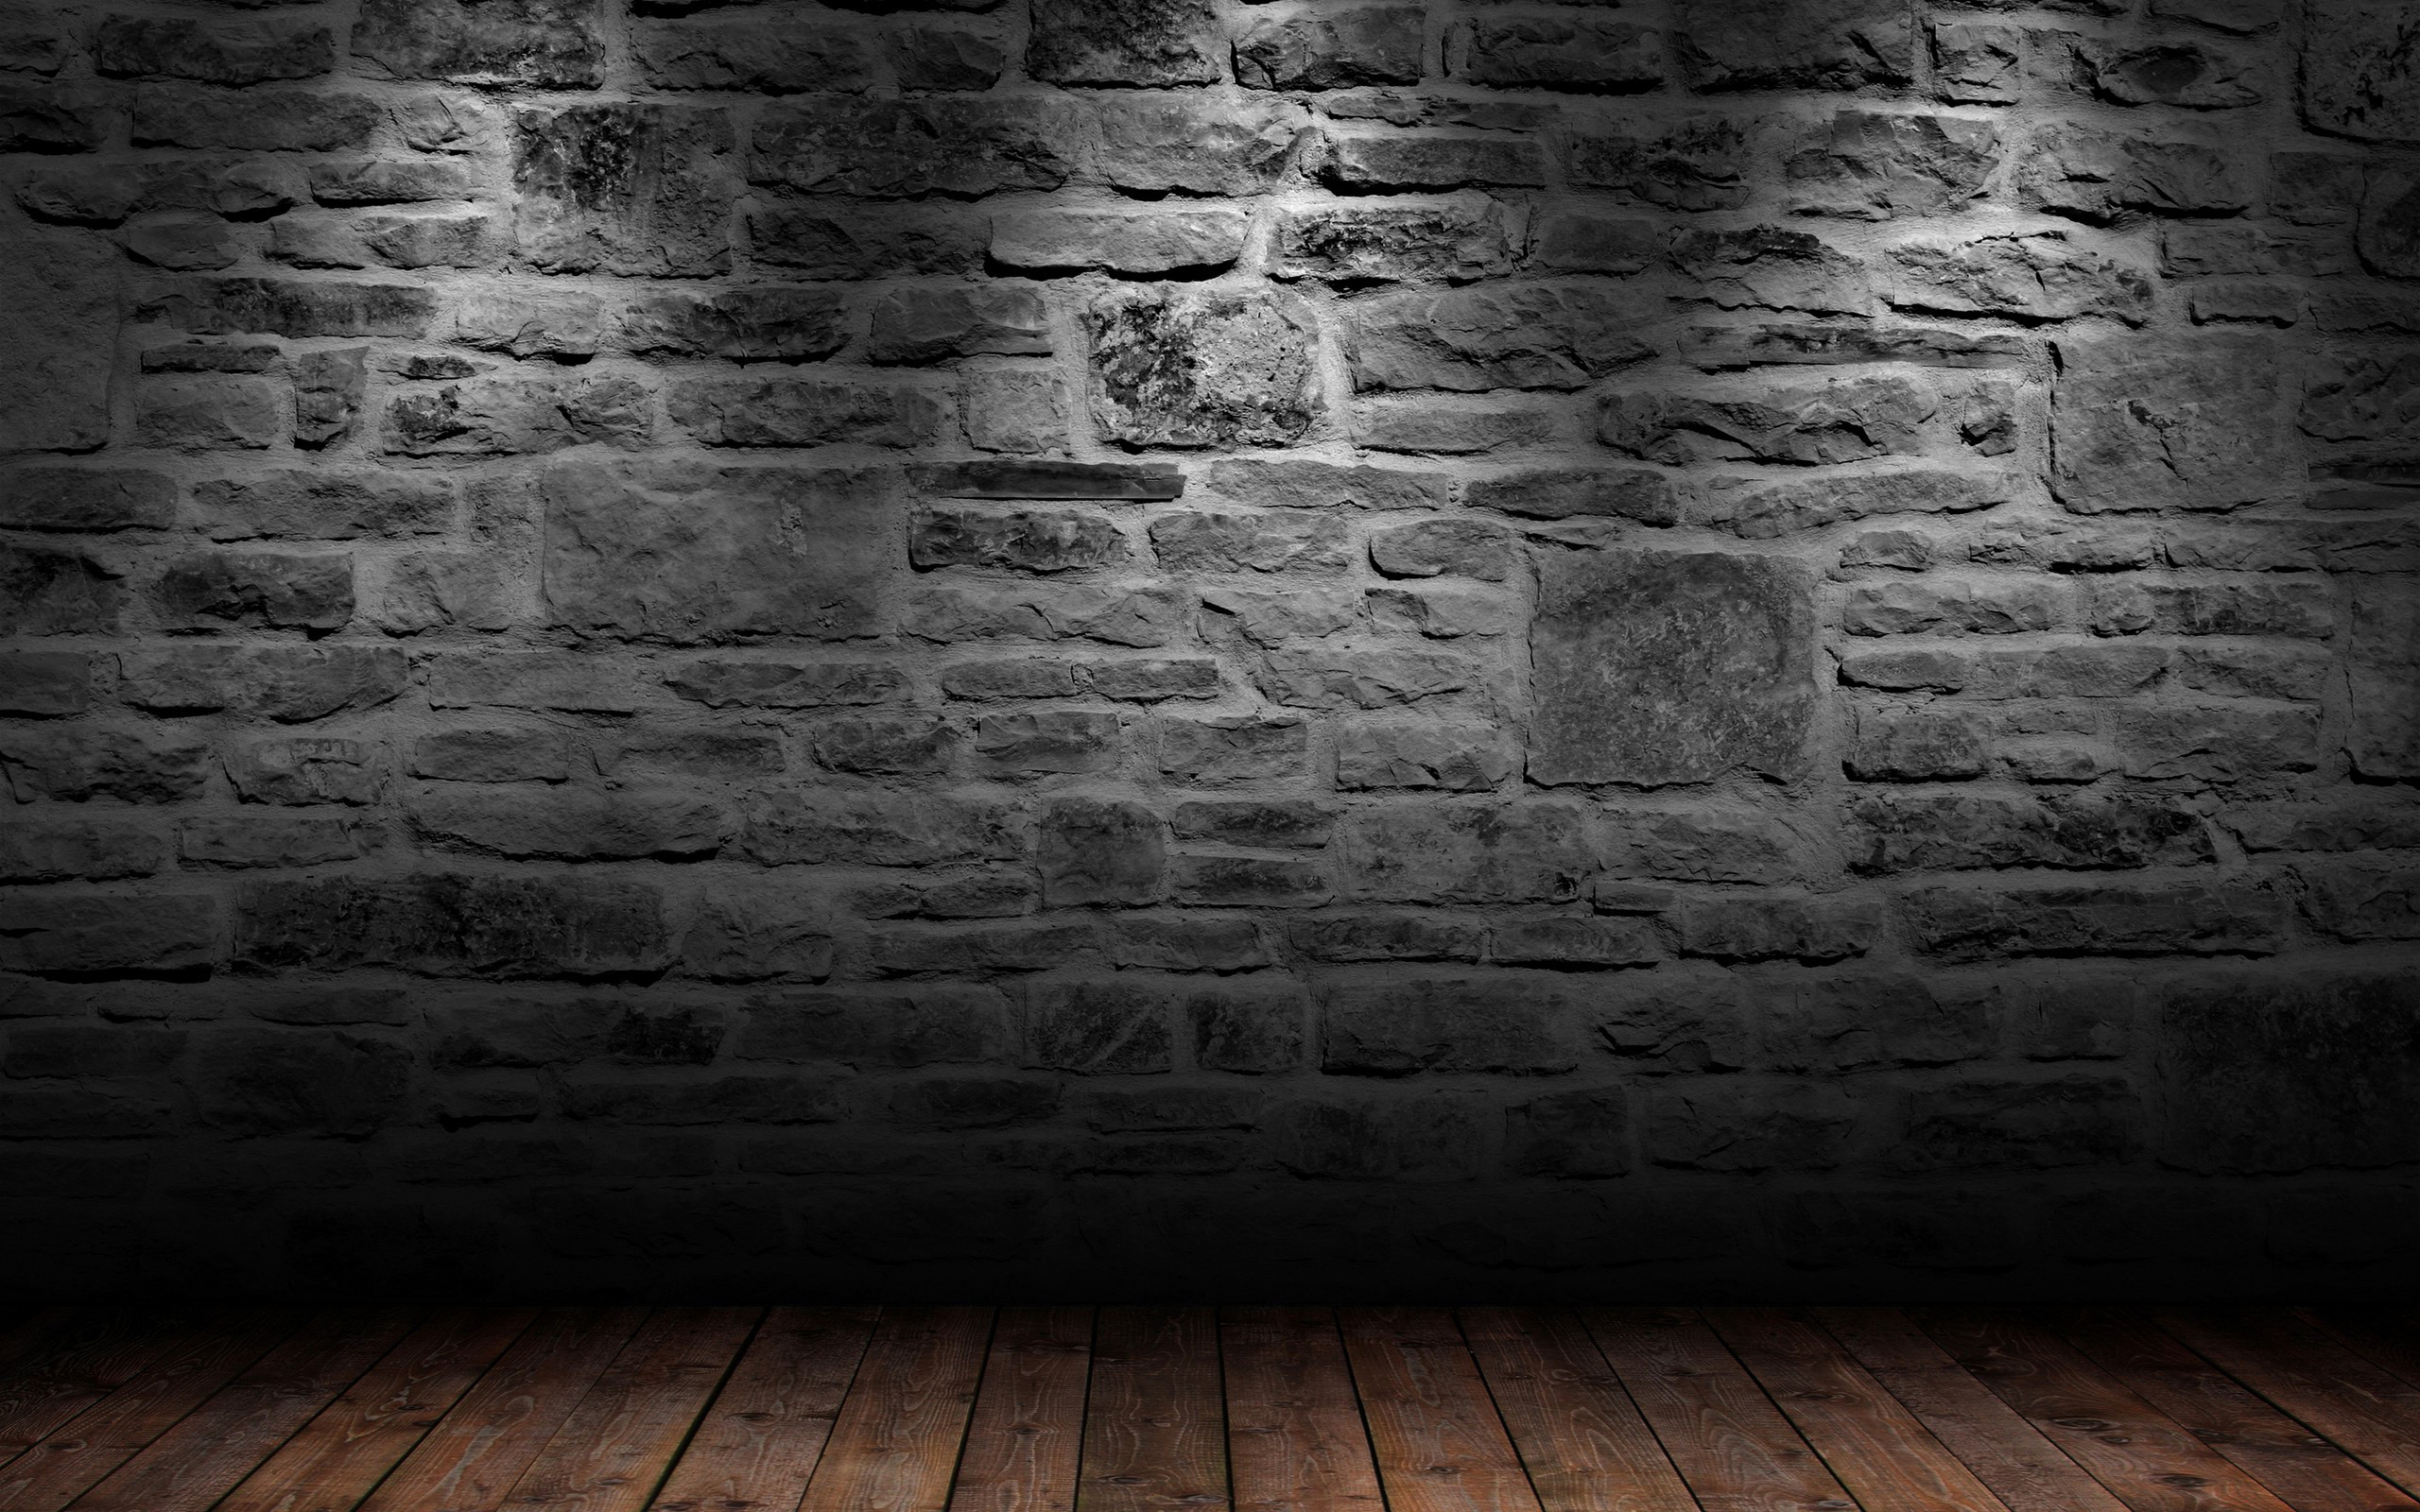 2560x1600 stone and wood 3D wallpaper